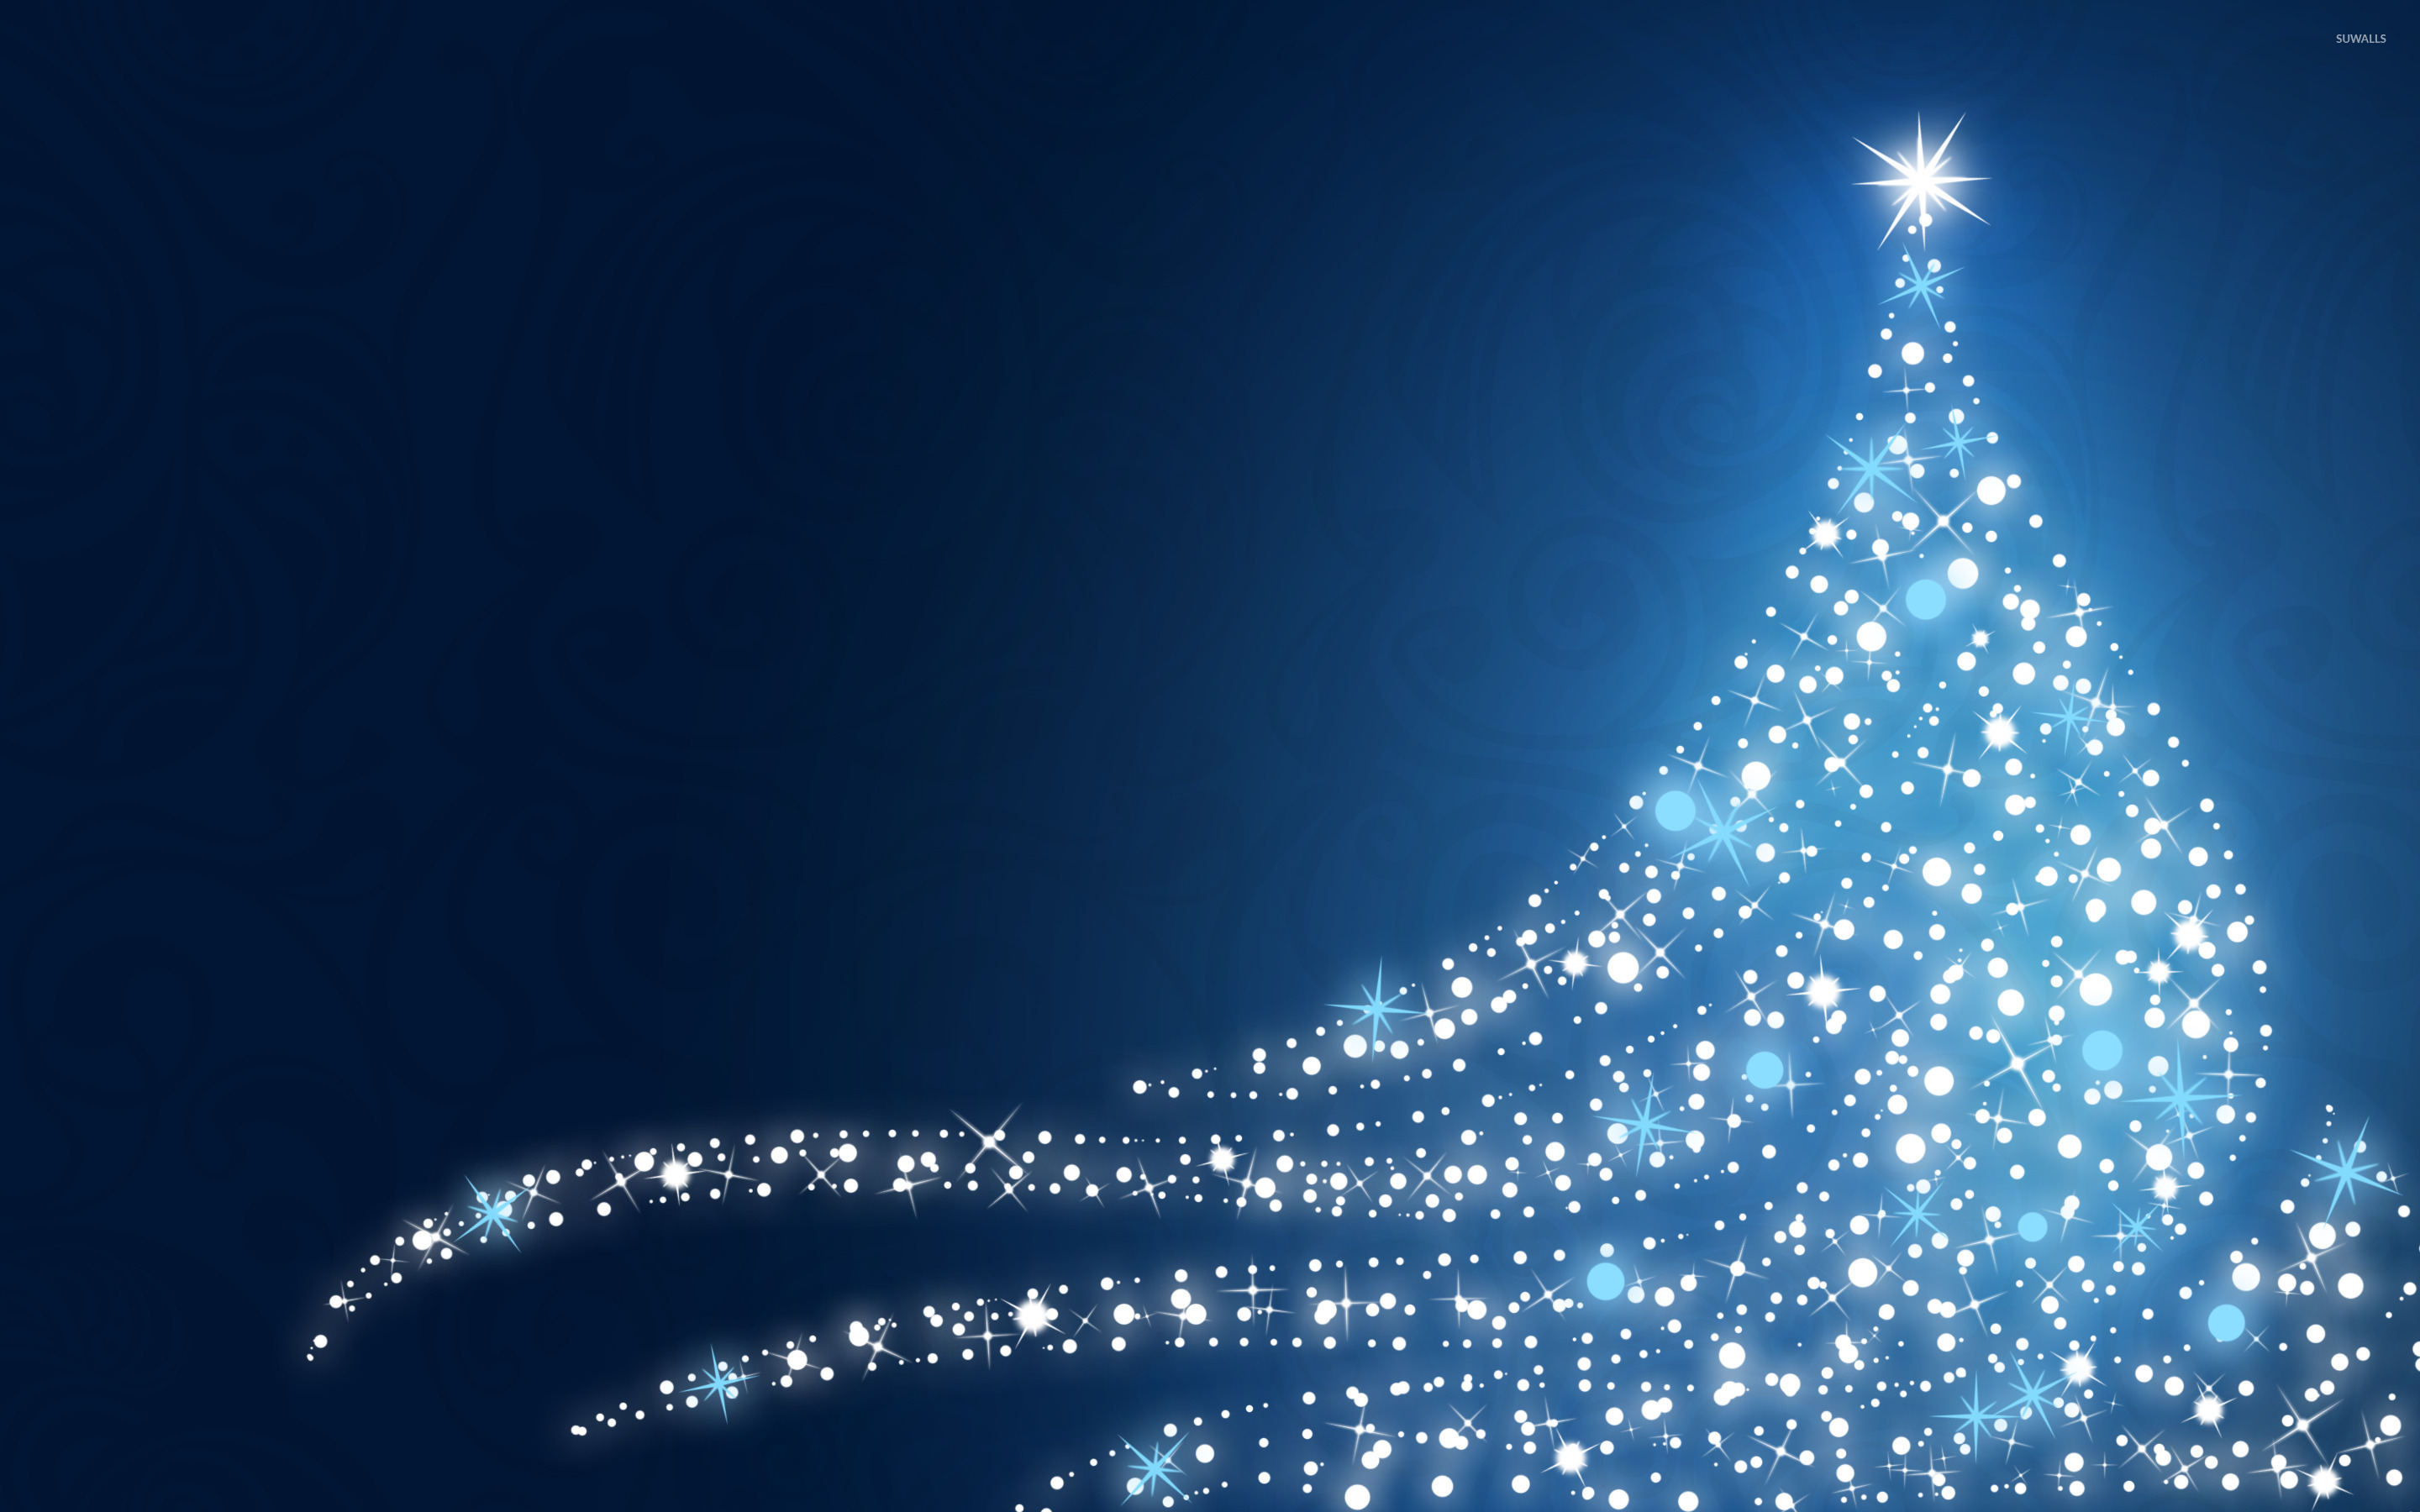 Sparkling Christmas tree wallpaper   Holiday wallpapers   25835 2880x1800